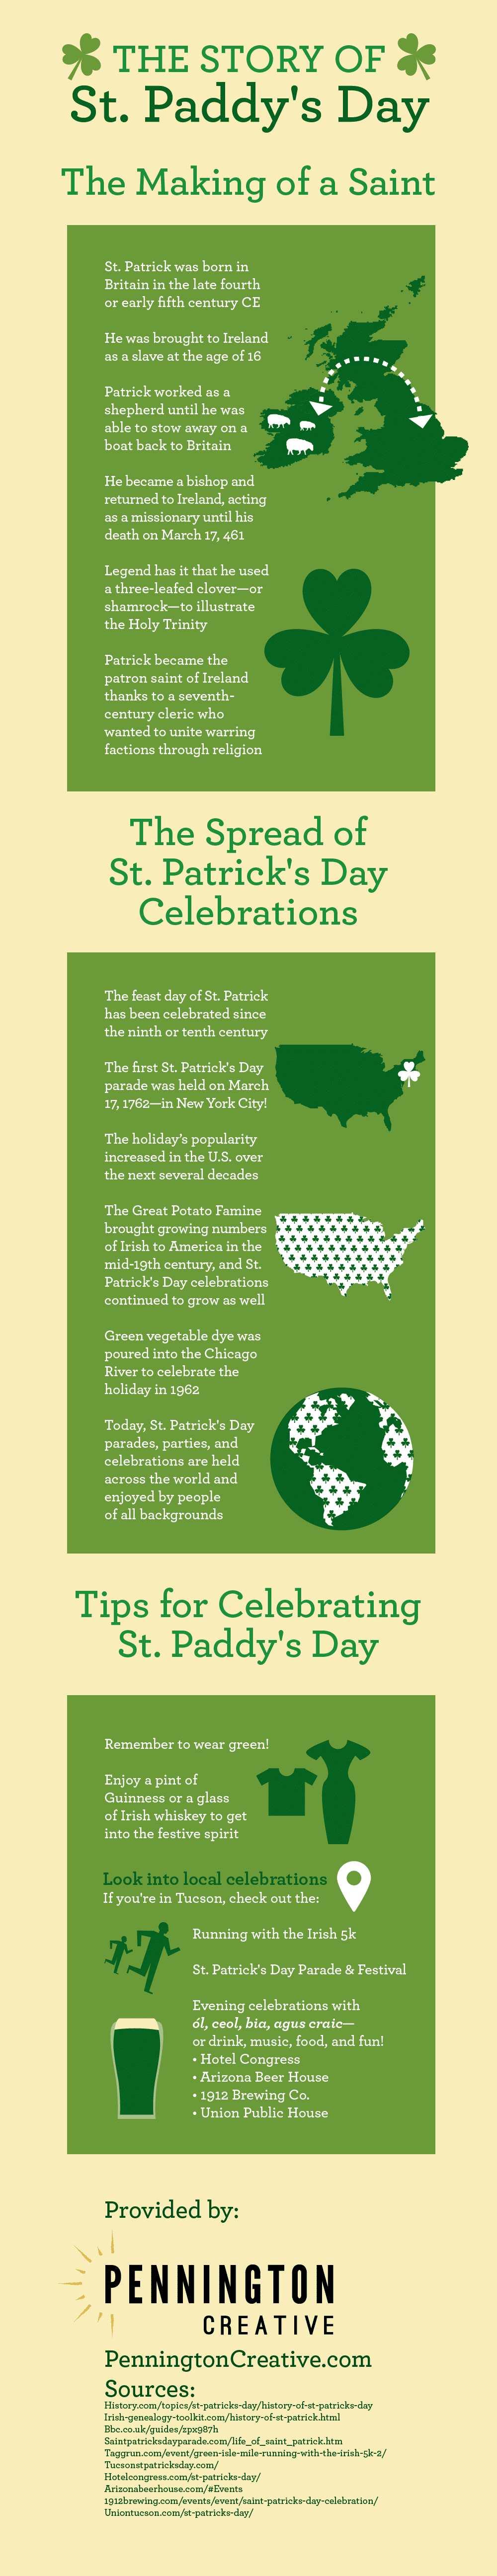 Infographic about the history of St. Patrick's Day.